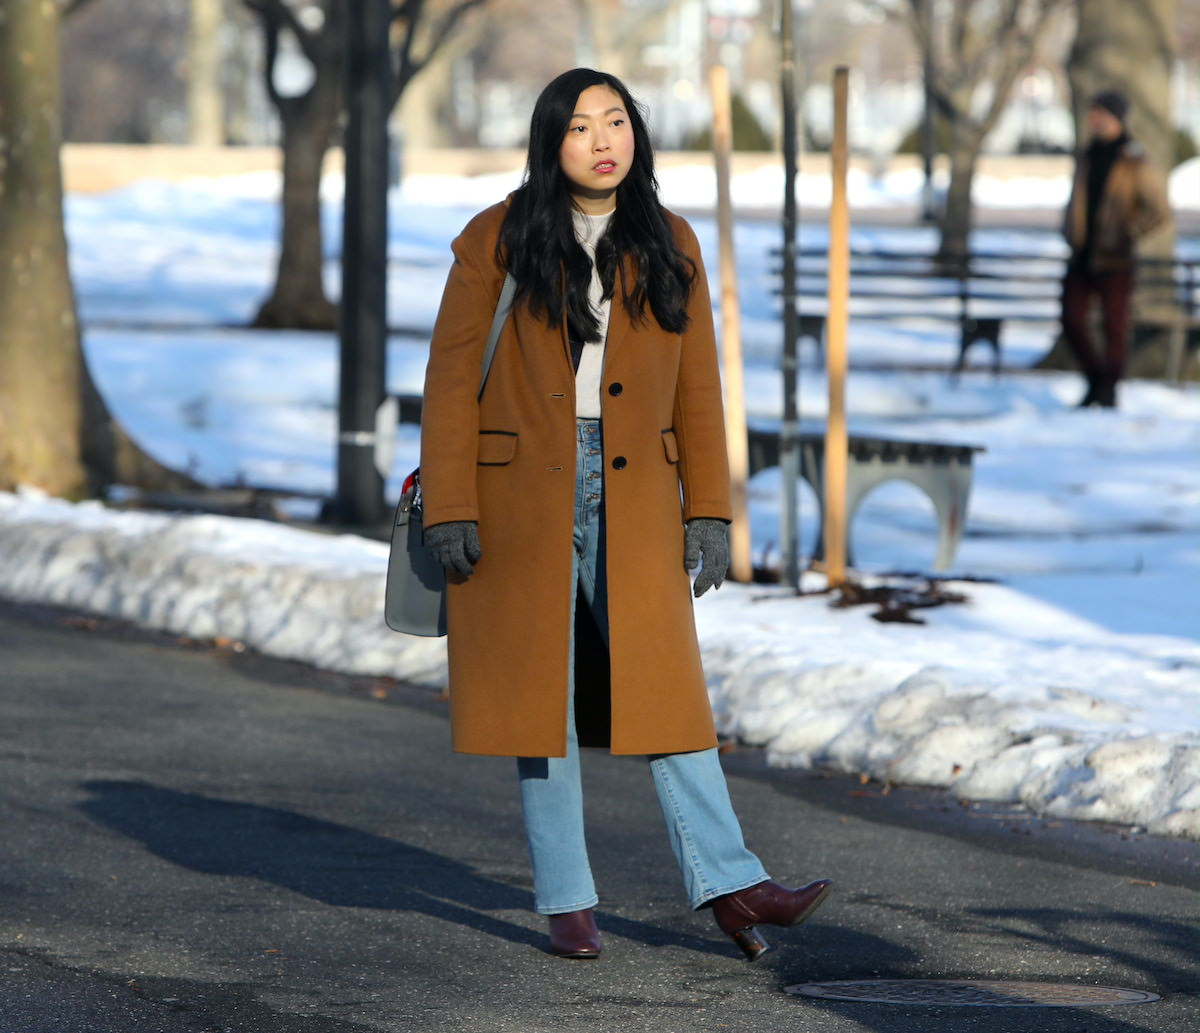 Awkwafina wears a brown coat and jeans as she looks on while filming a scene from 'Awkwafina Is Nora From Queens' in 2021